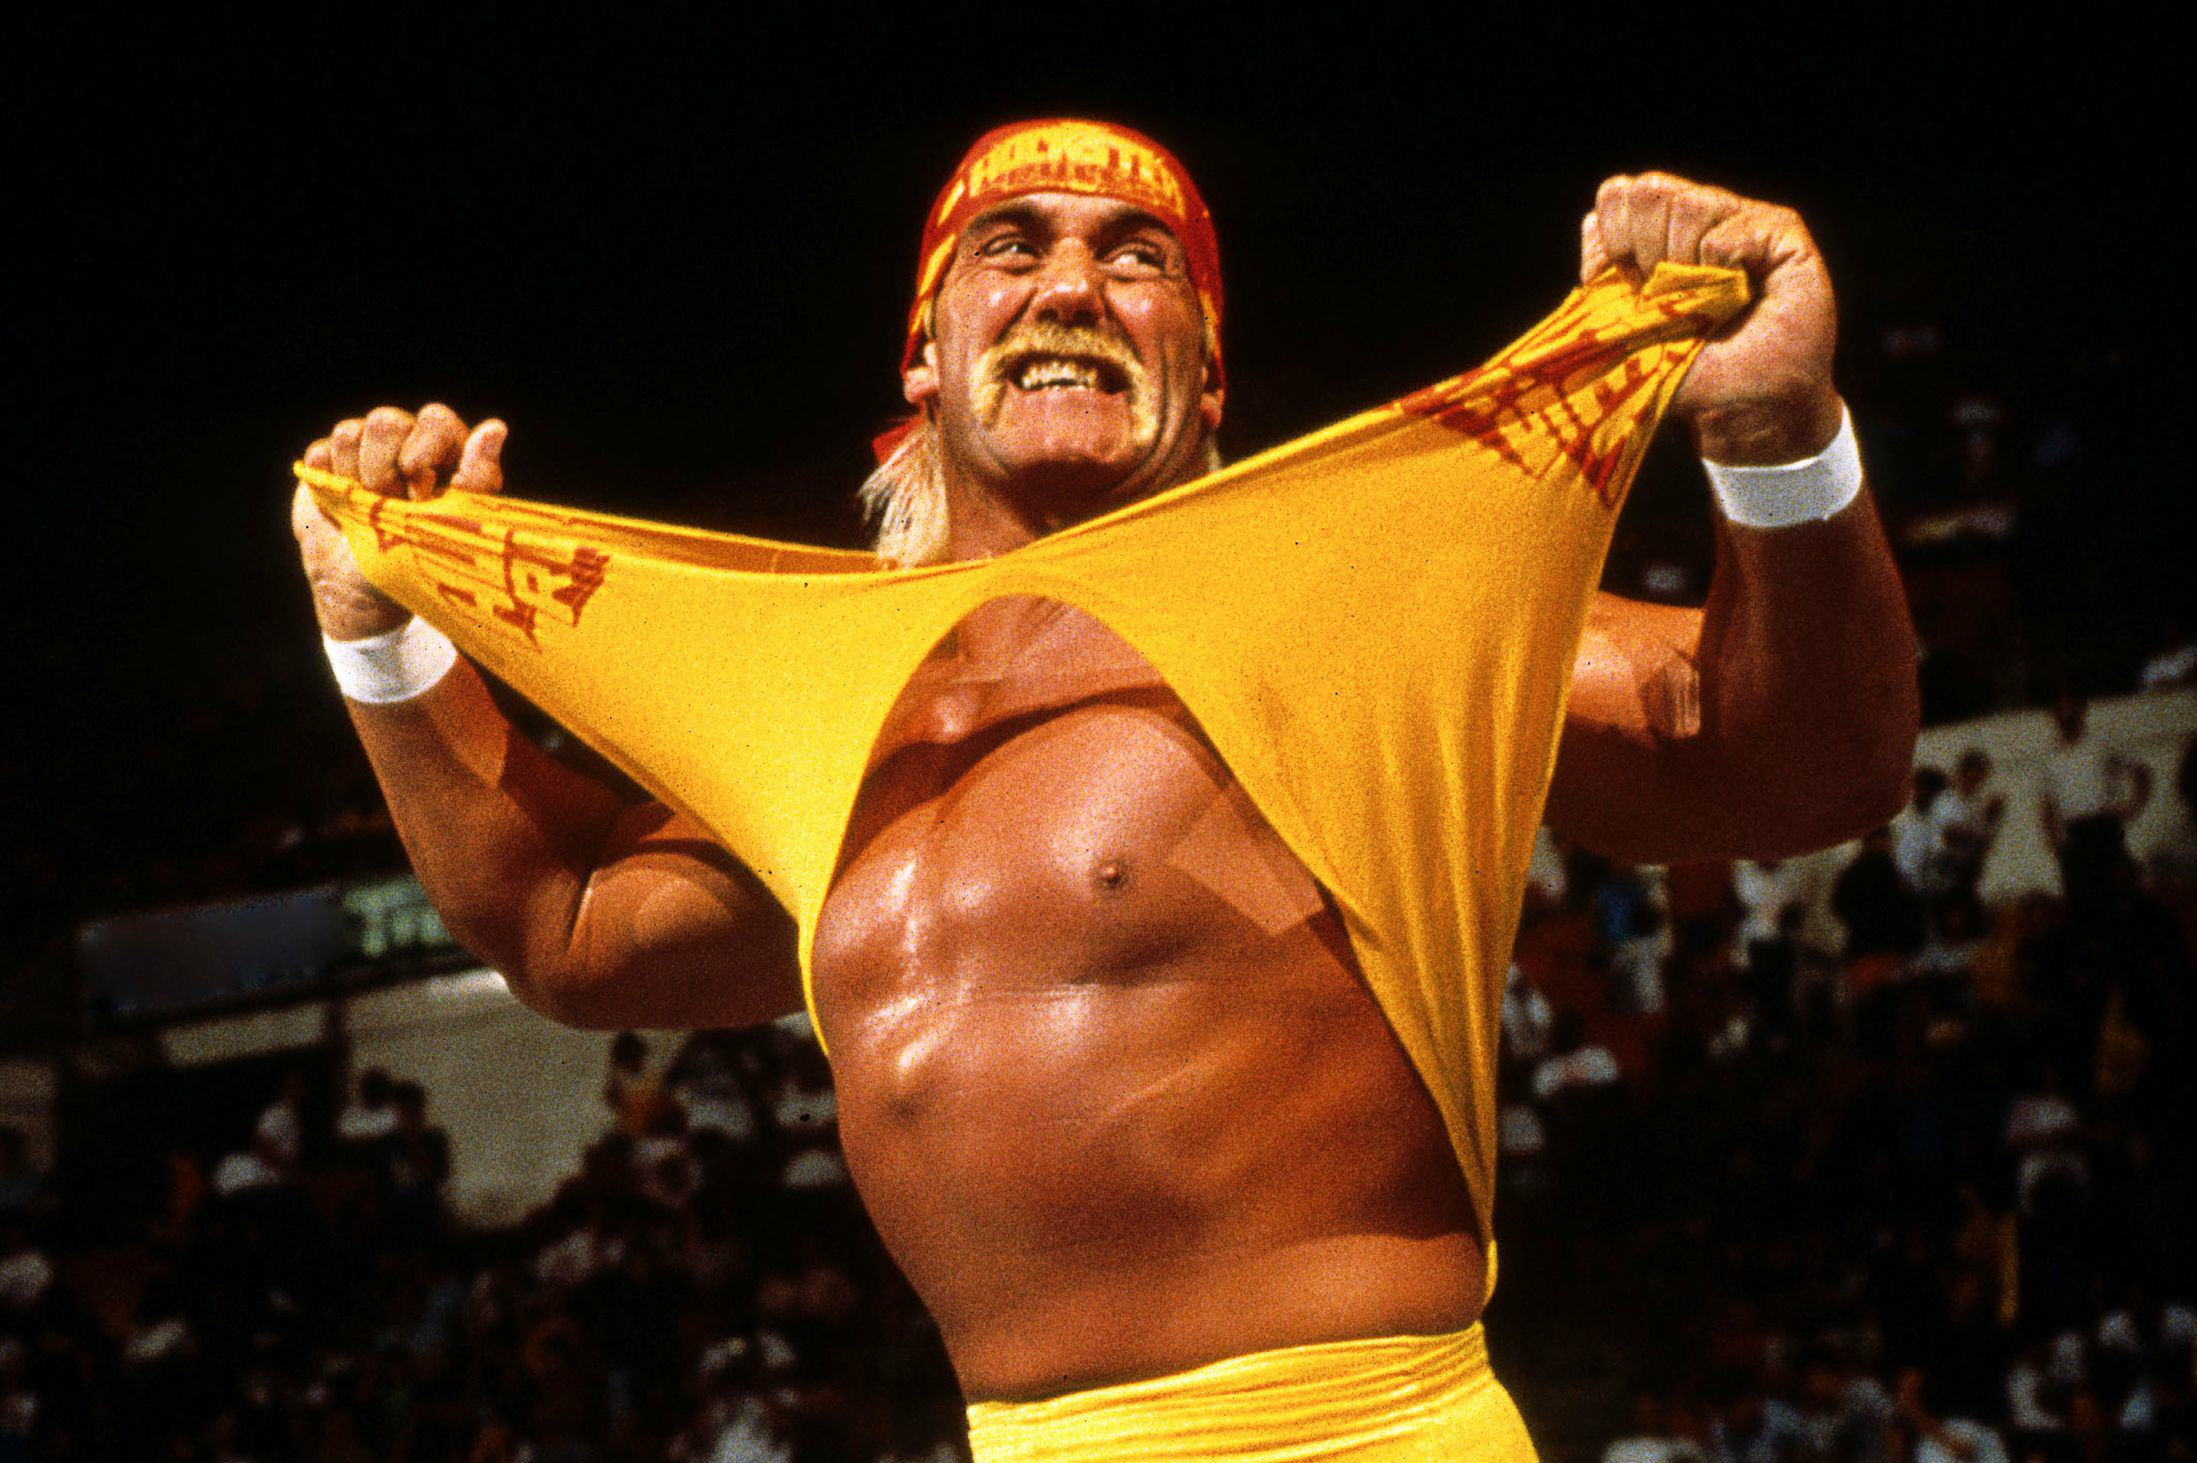 The WWE Has Wiped Hulk Hogan From Pretty Much Everything Expendables 4 Hulk Hogan pourrait etre le mechant du film